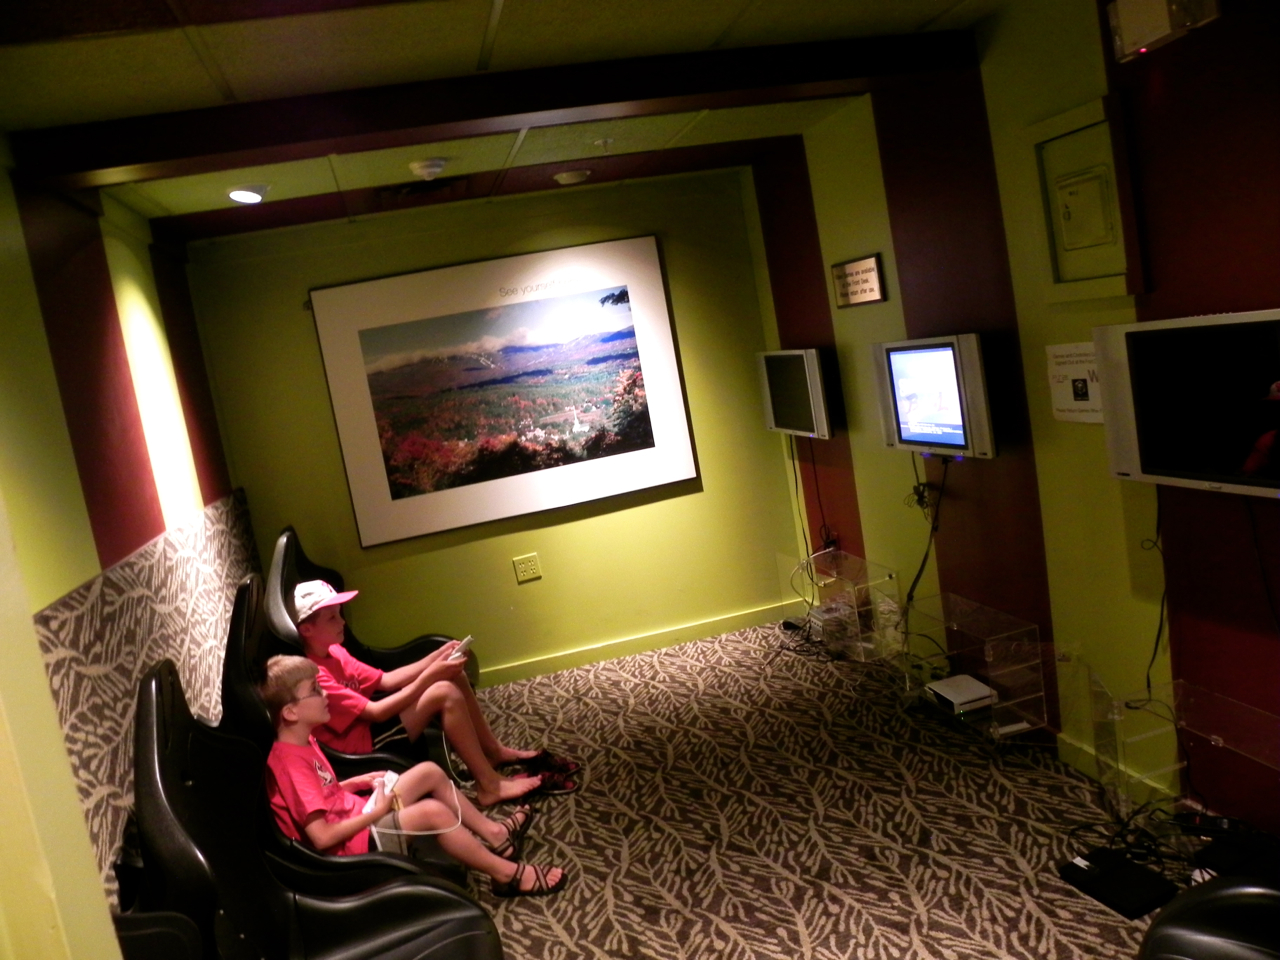 Luxury comfort and fun for families at Topnotch Resort